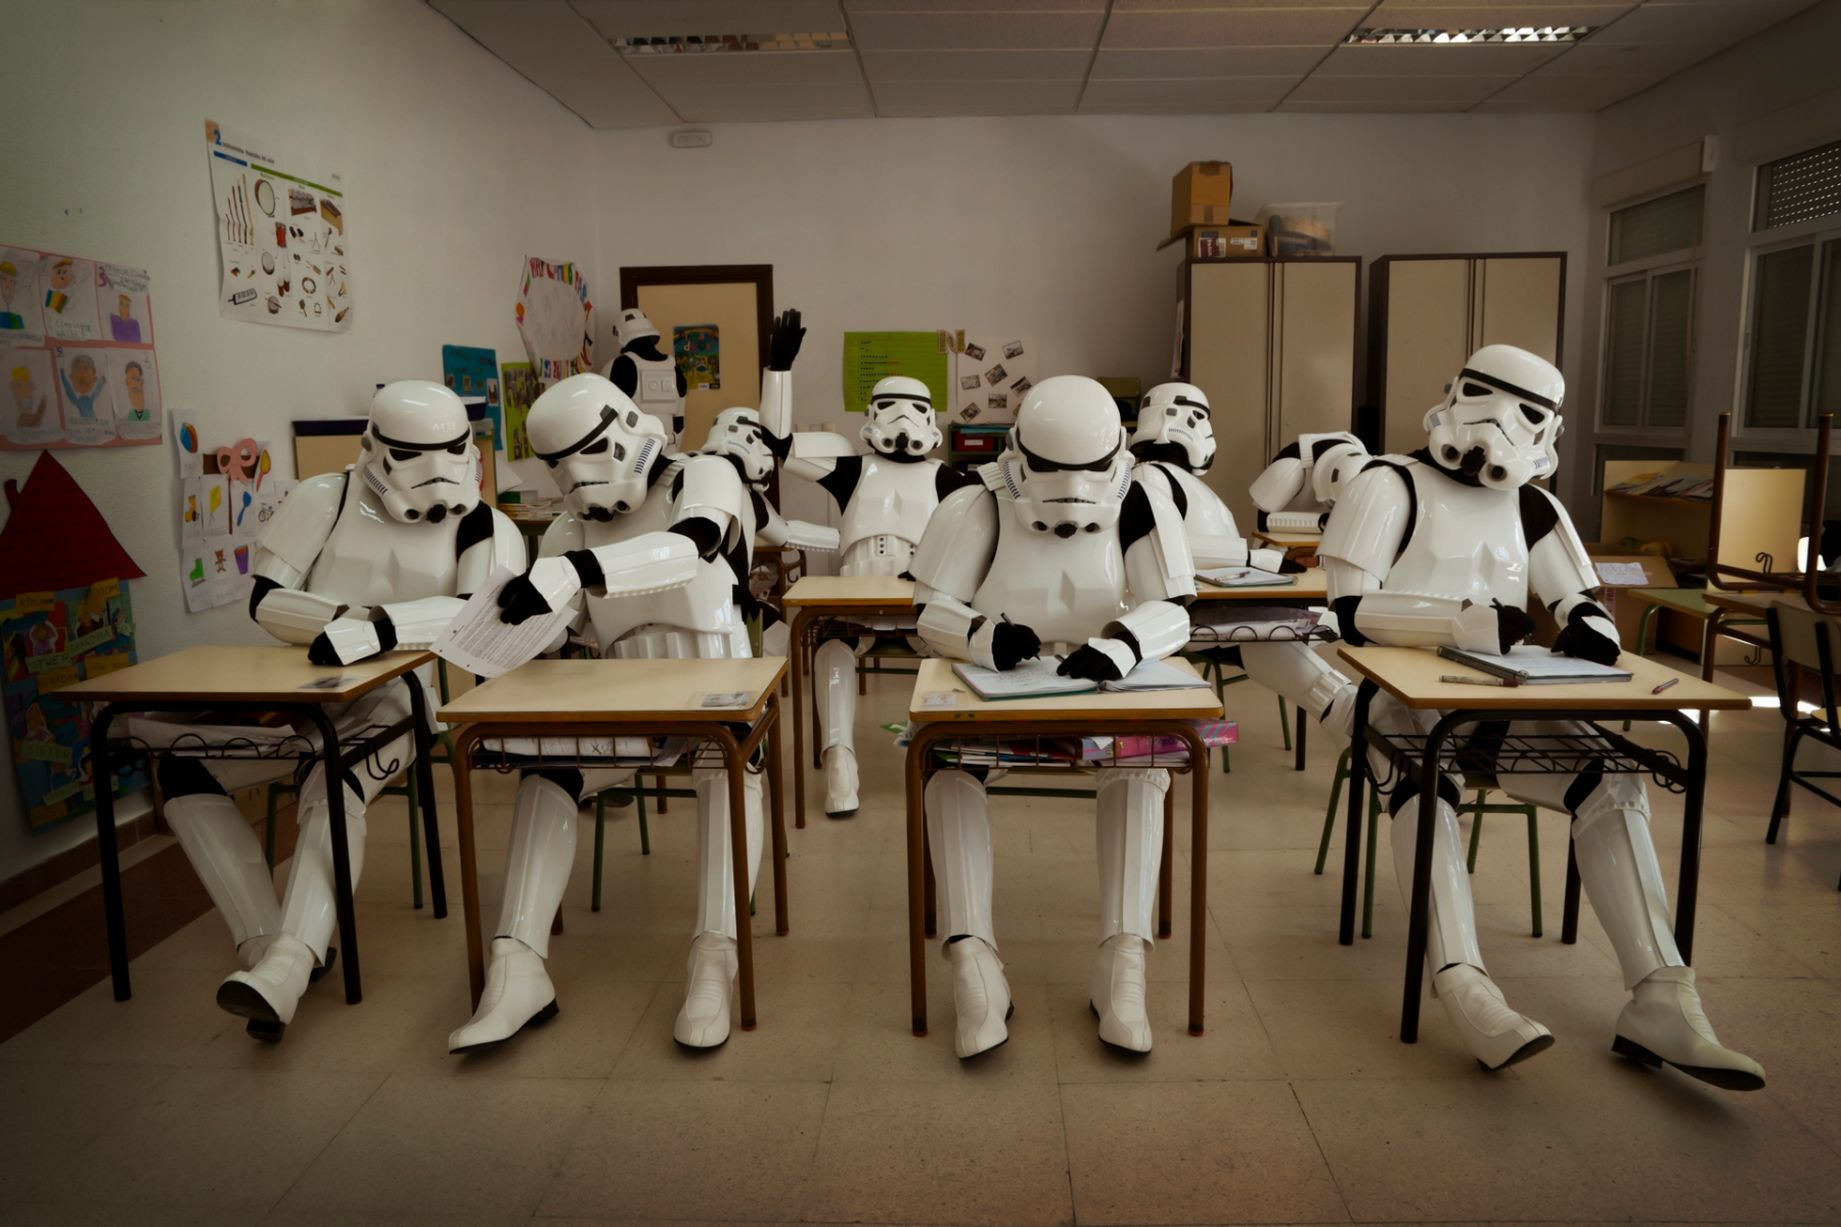 PAY-Stormtroopers-go-to-school.jpg